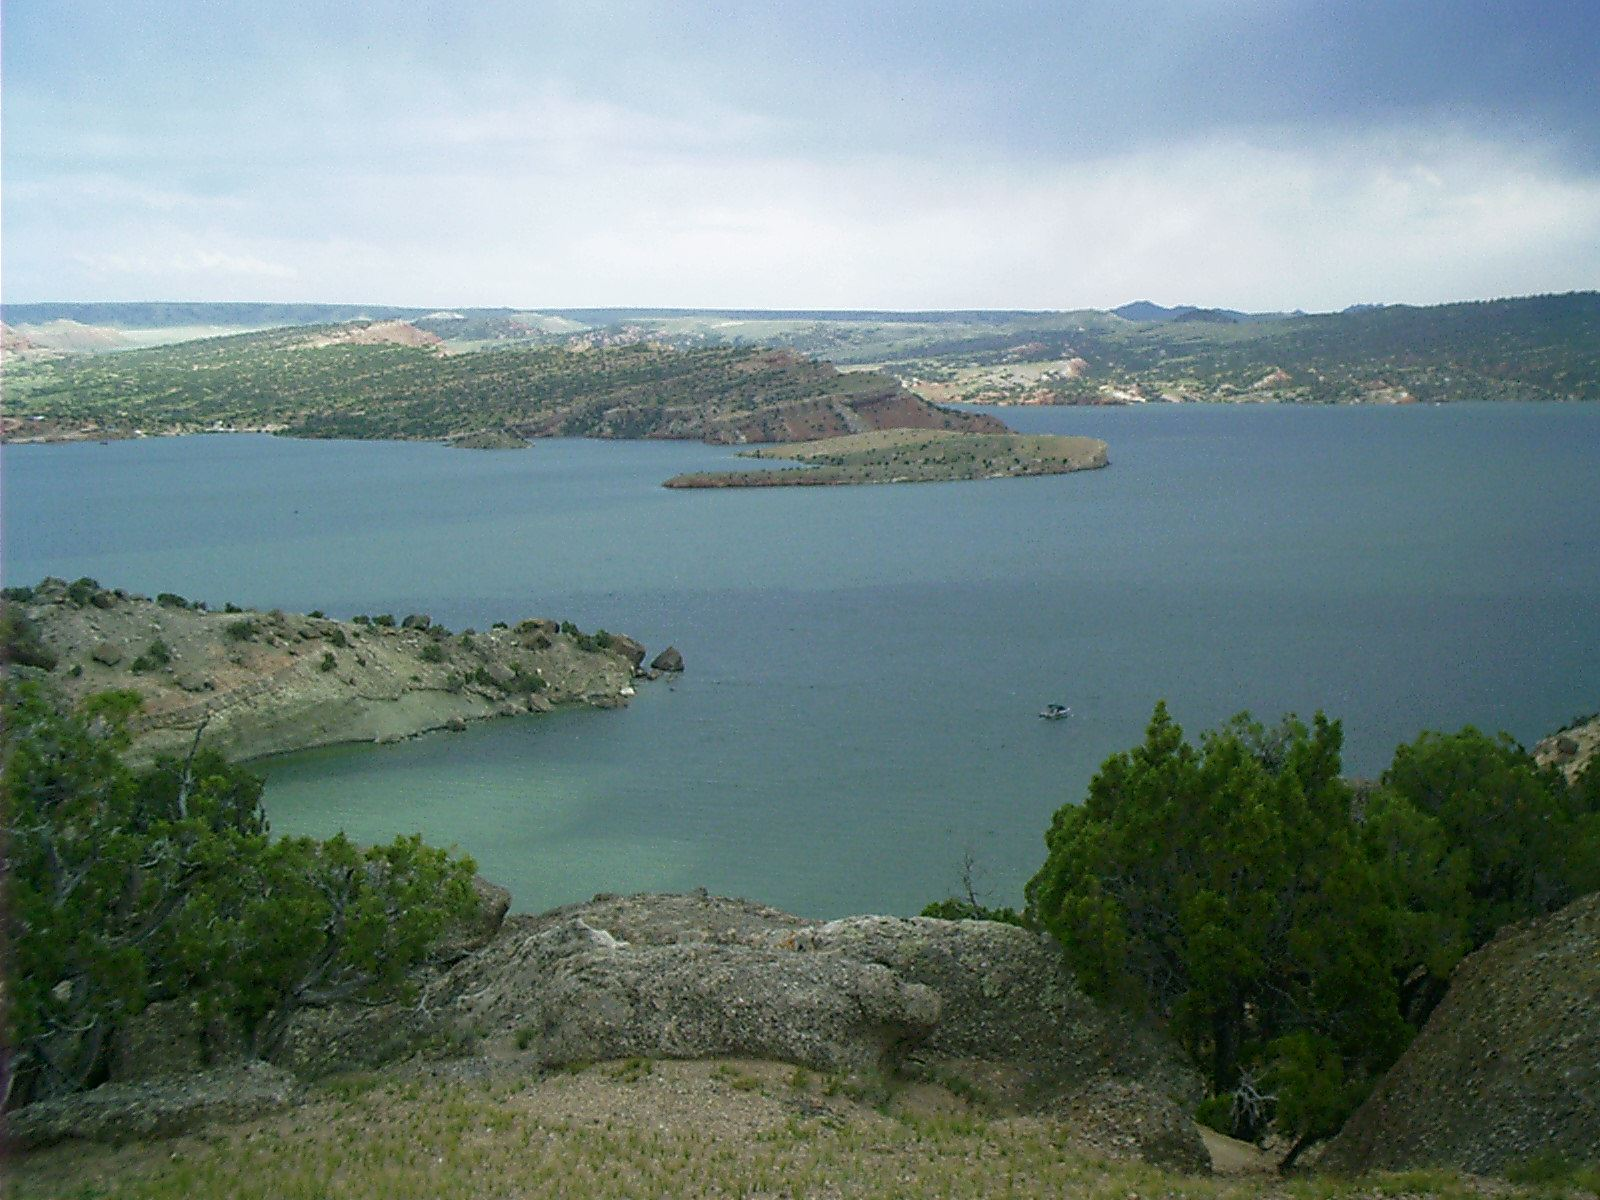 trees and rocks overlooking Alcova Reservoir, blue water, hills with trees